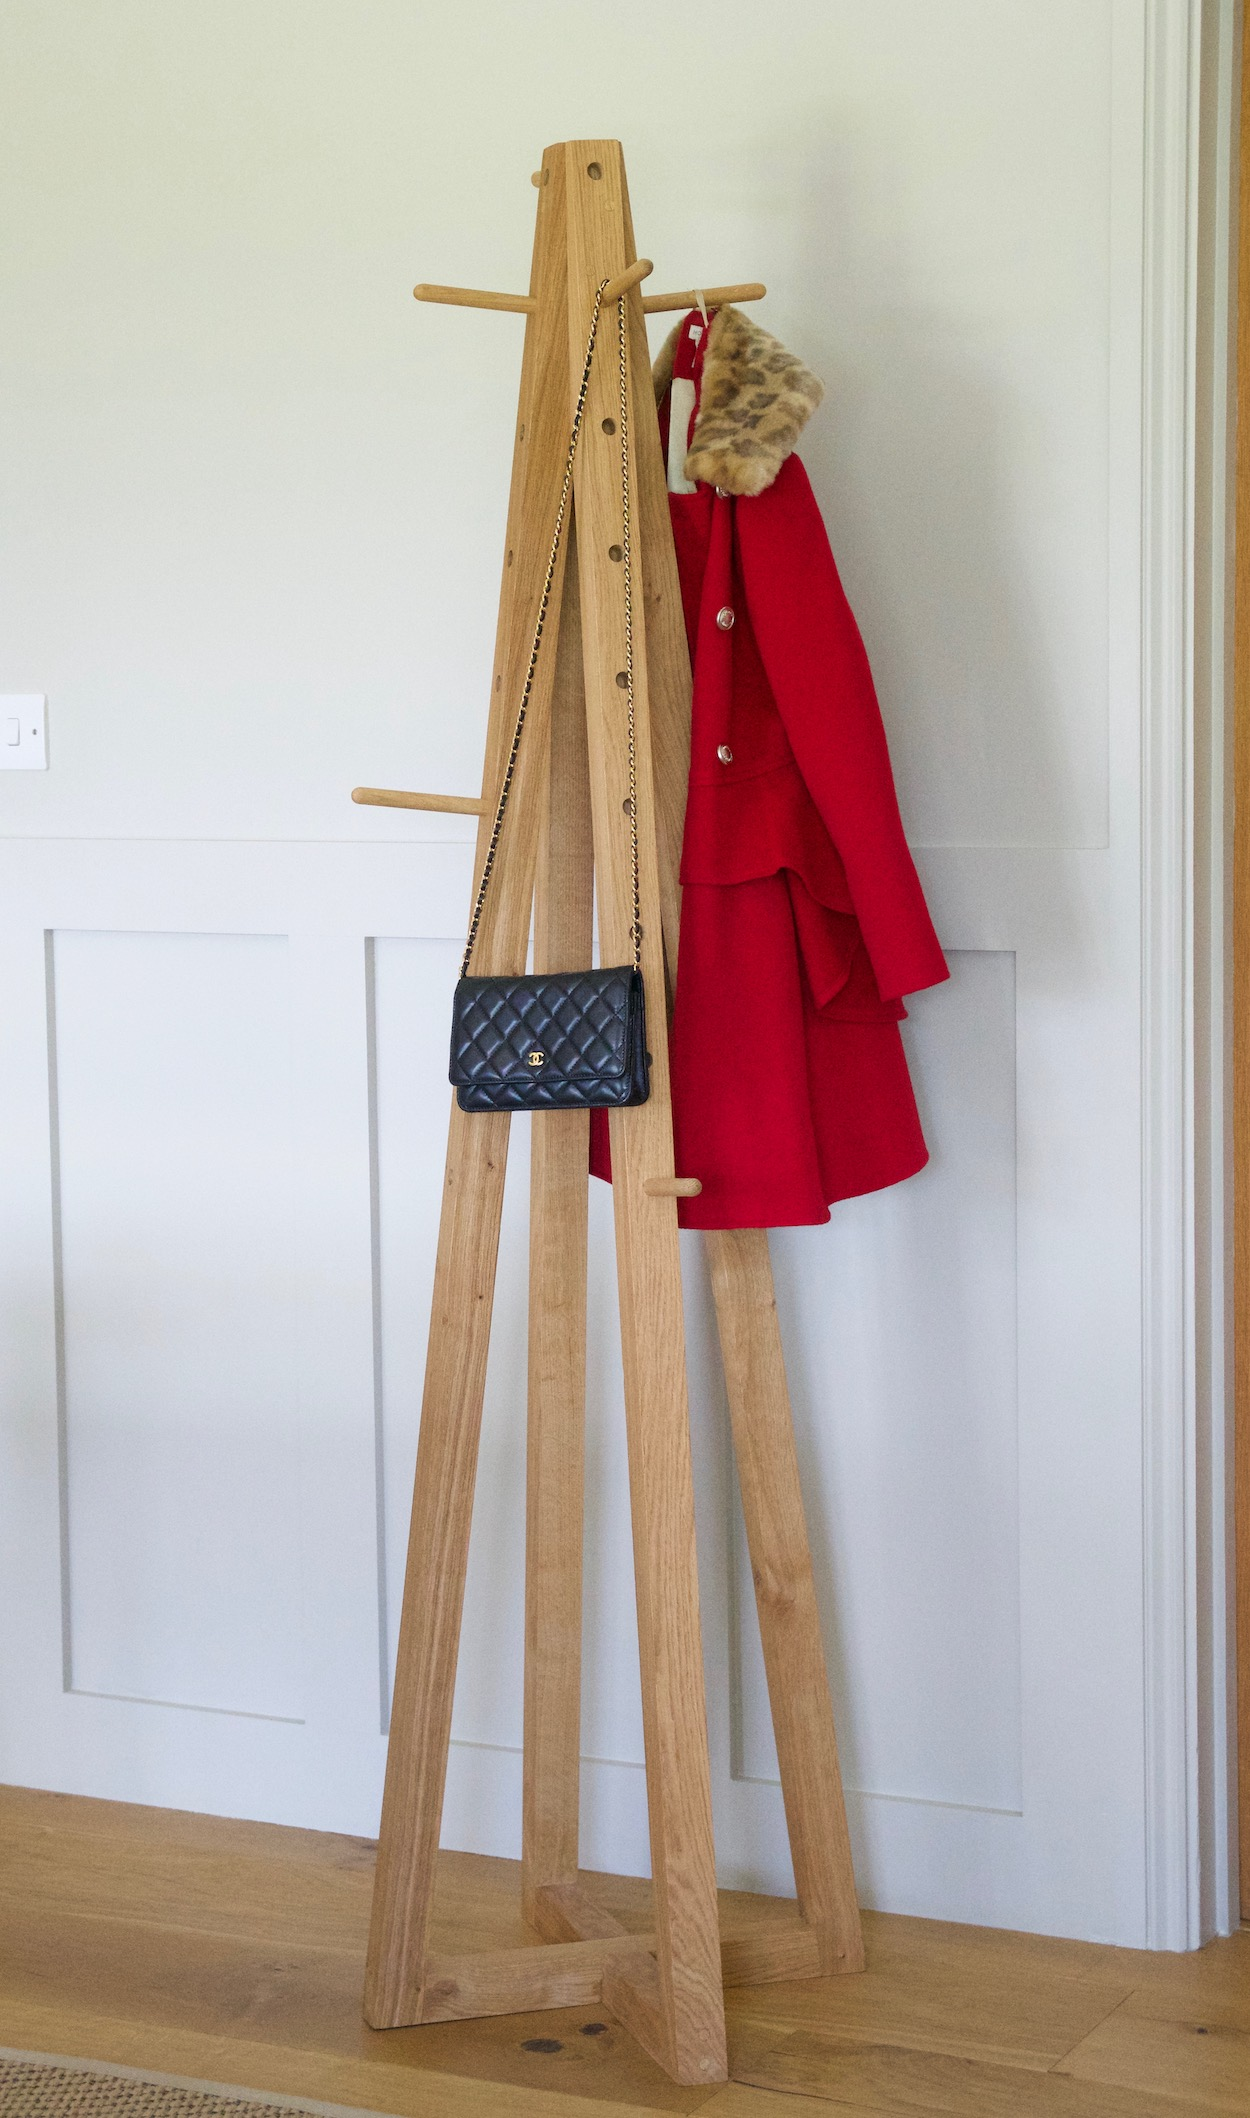 handmade-oak-coat-rack-stand